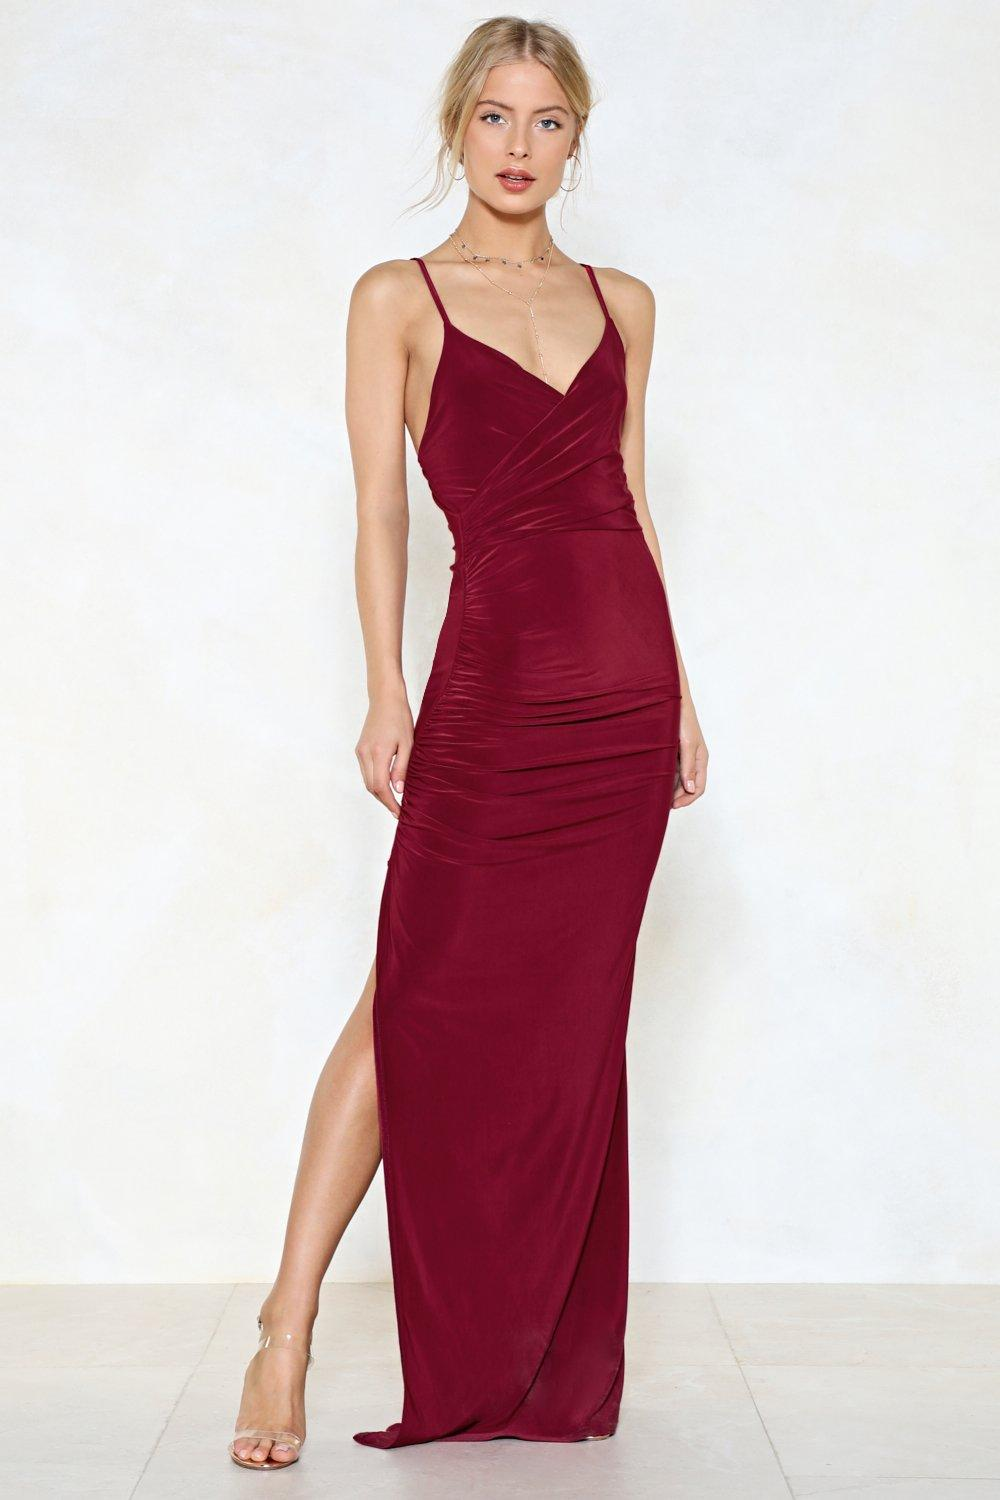 A slit dress for every occasion and every taste